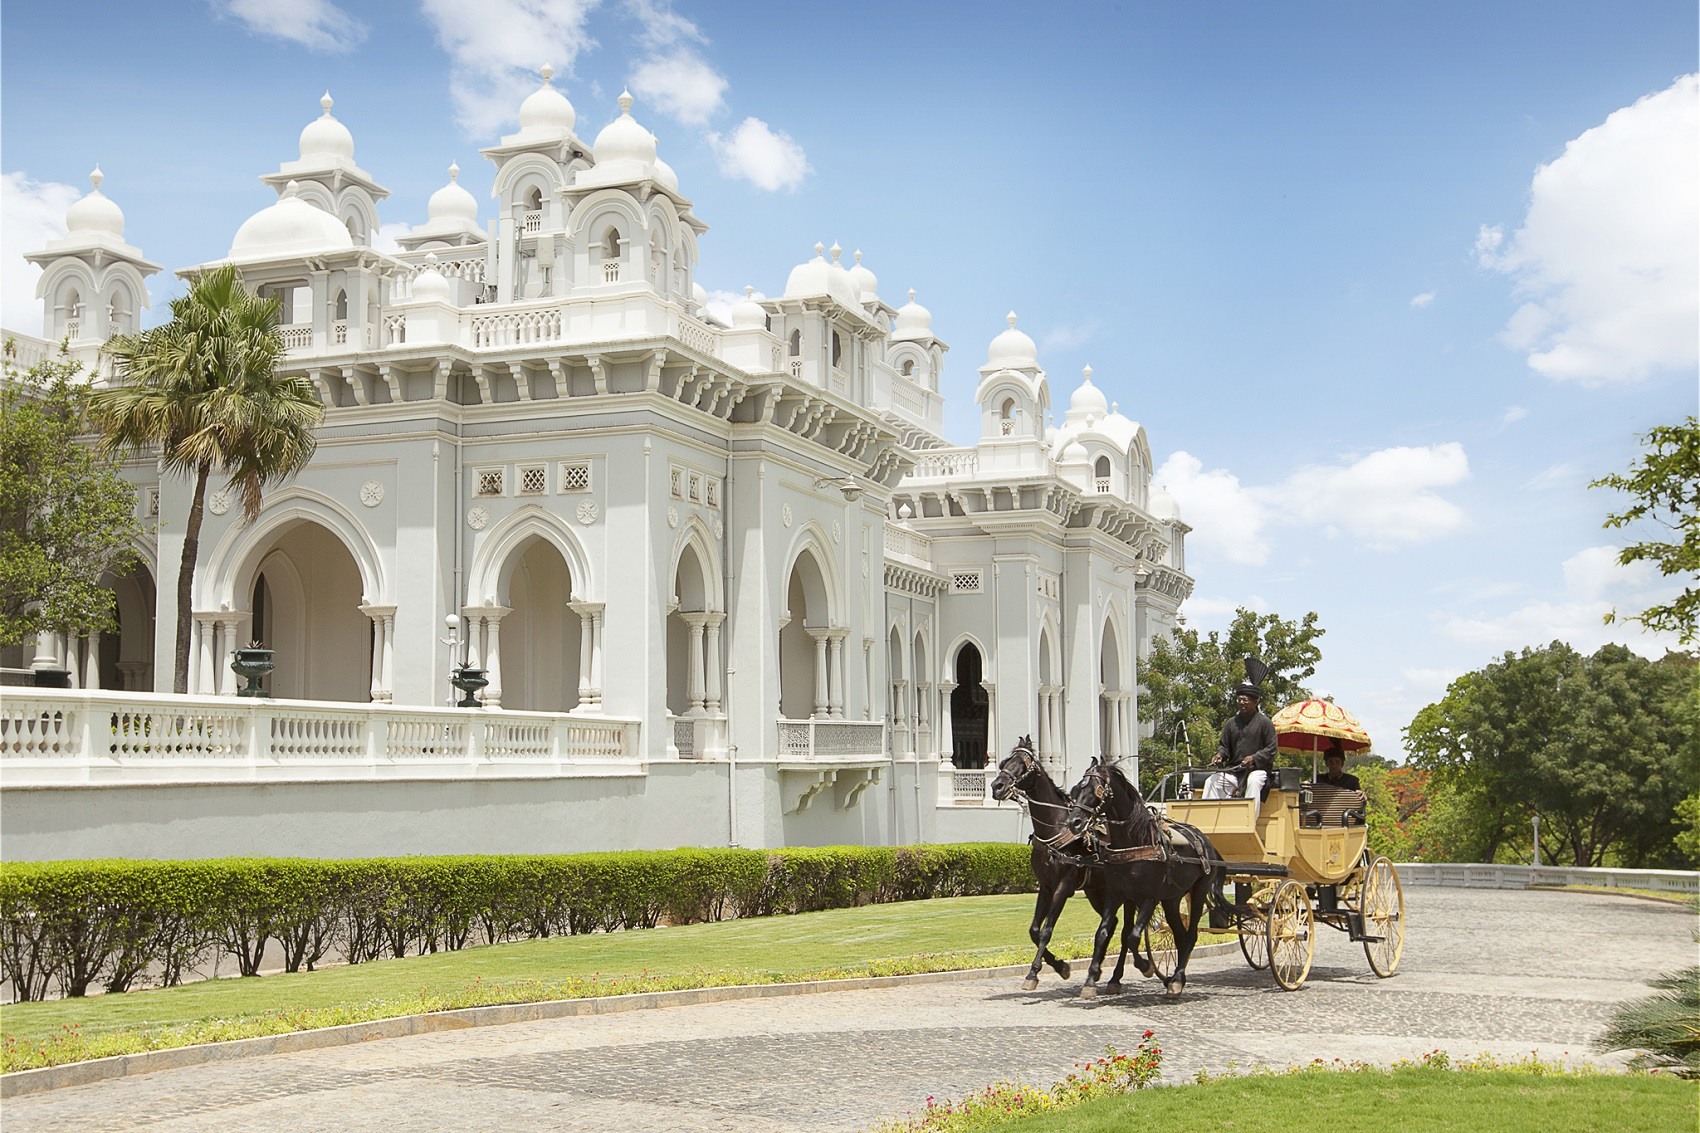 Top 5 Heritage Wedding Venues in Hyderabad for a Fairytale Wedding